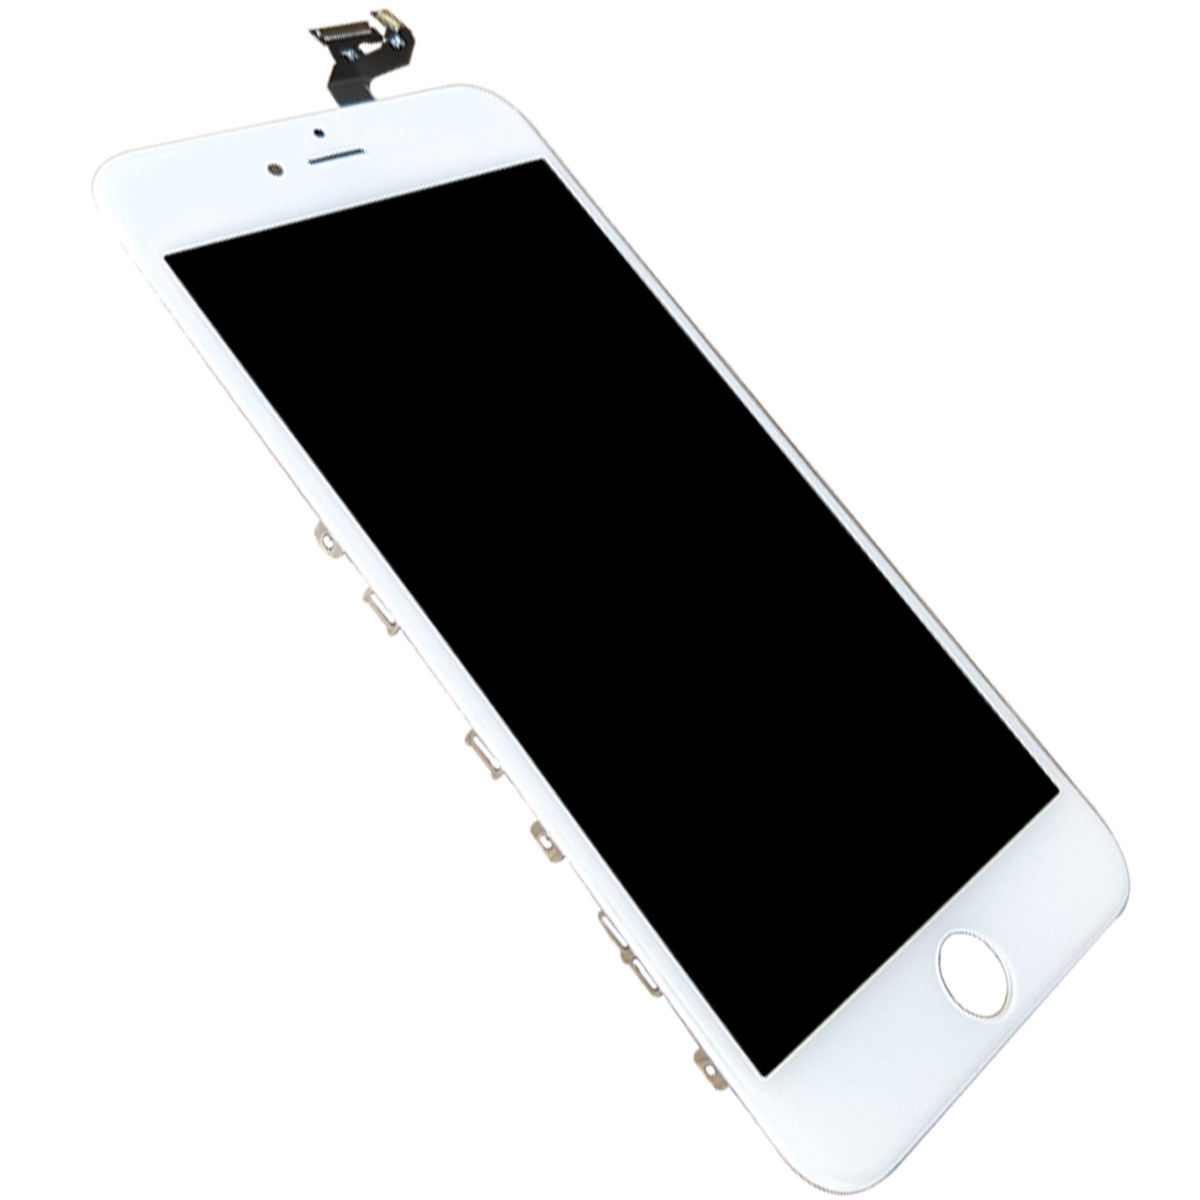 Buy Brand New Apple iPhone 6s plus LCD Touch Screen Display White white Unknown Network Brand New